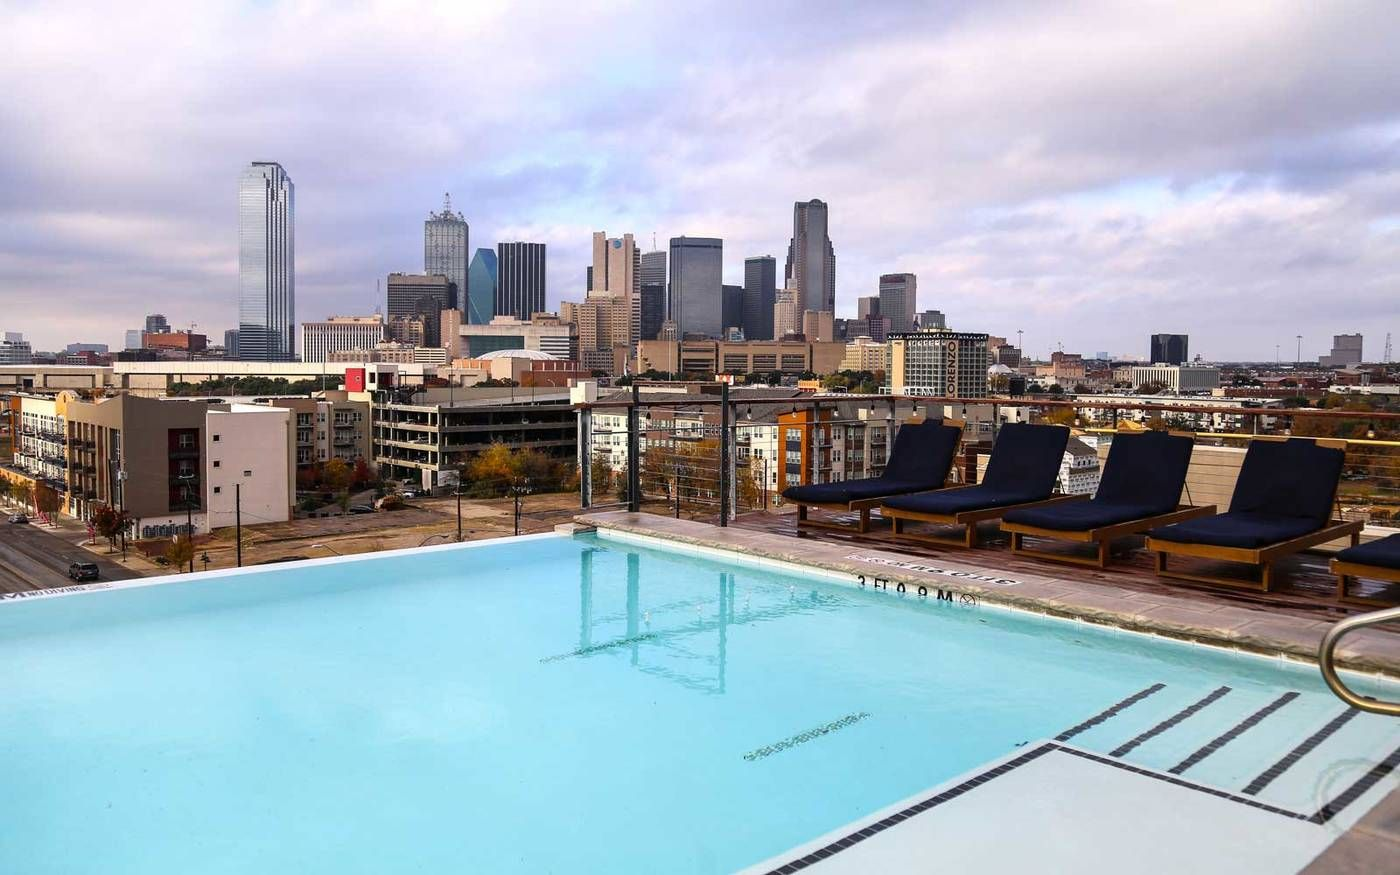 The Best Rooftop Bars in Dallas   Best rooftop bars, Fort ...